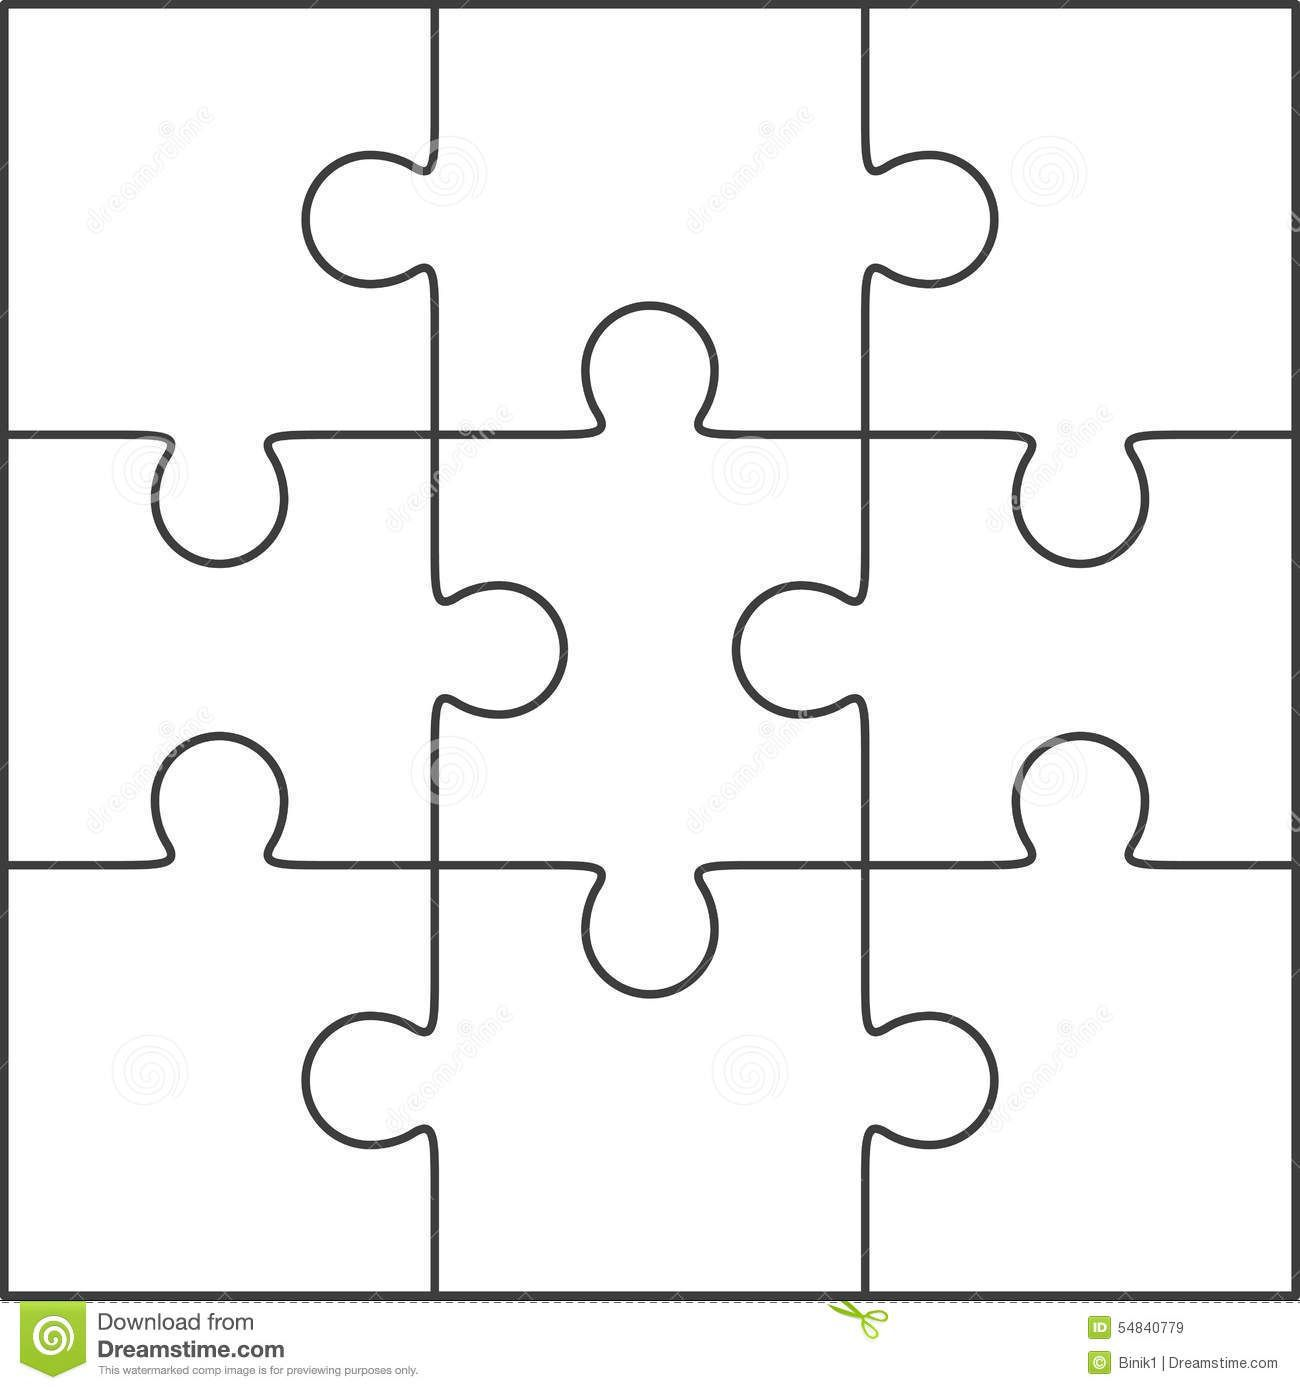 005 Marvelou Jig Saw Puzzle Template Photo  Printable Blank Jigsaw Vector Free PngFull